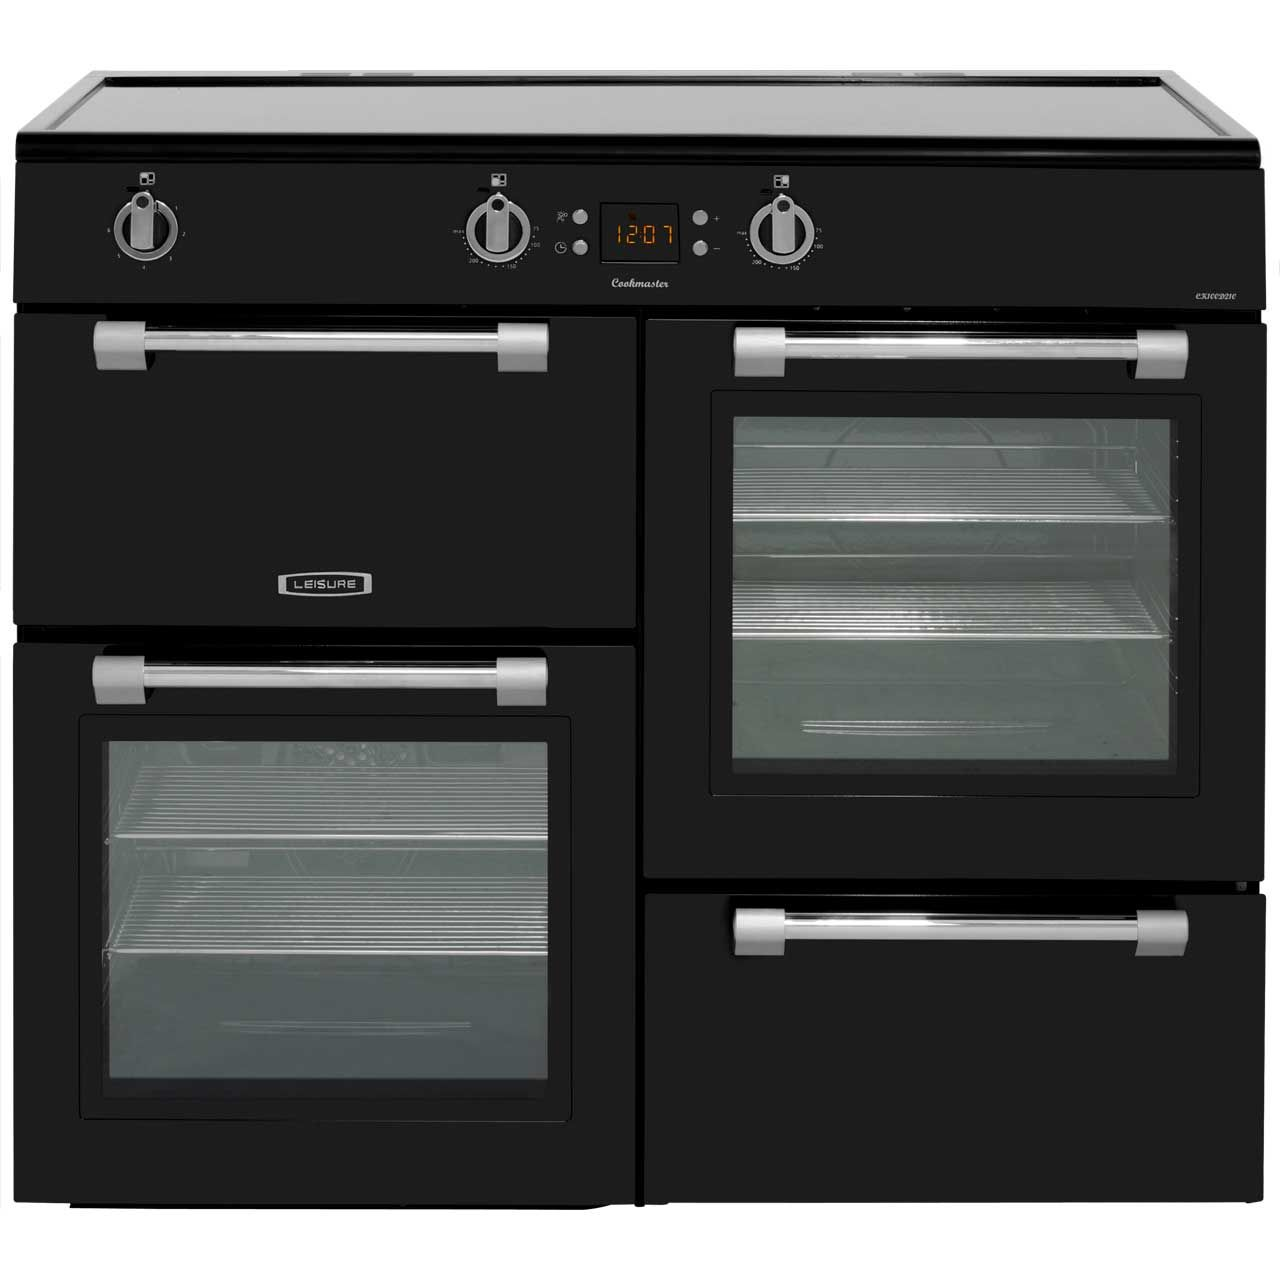 Leisure Cookmaster Ck100d210k 100cm Electric Range Cooker